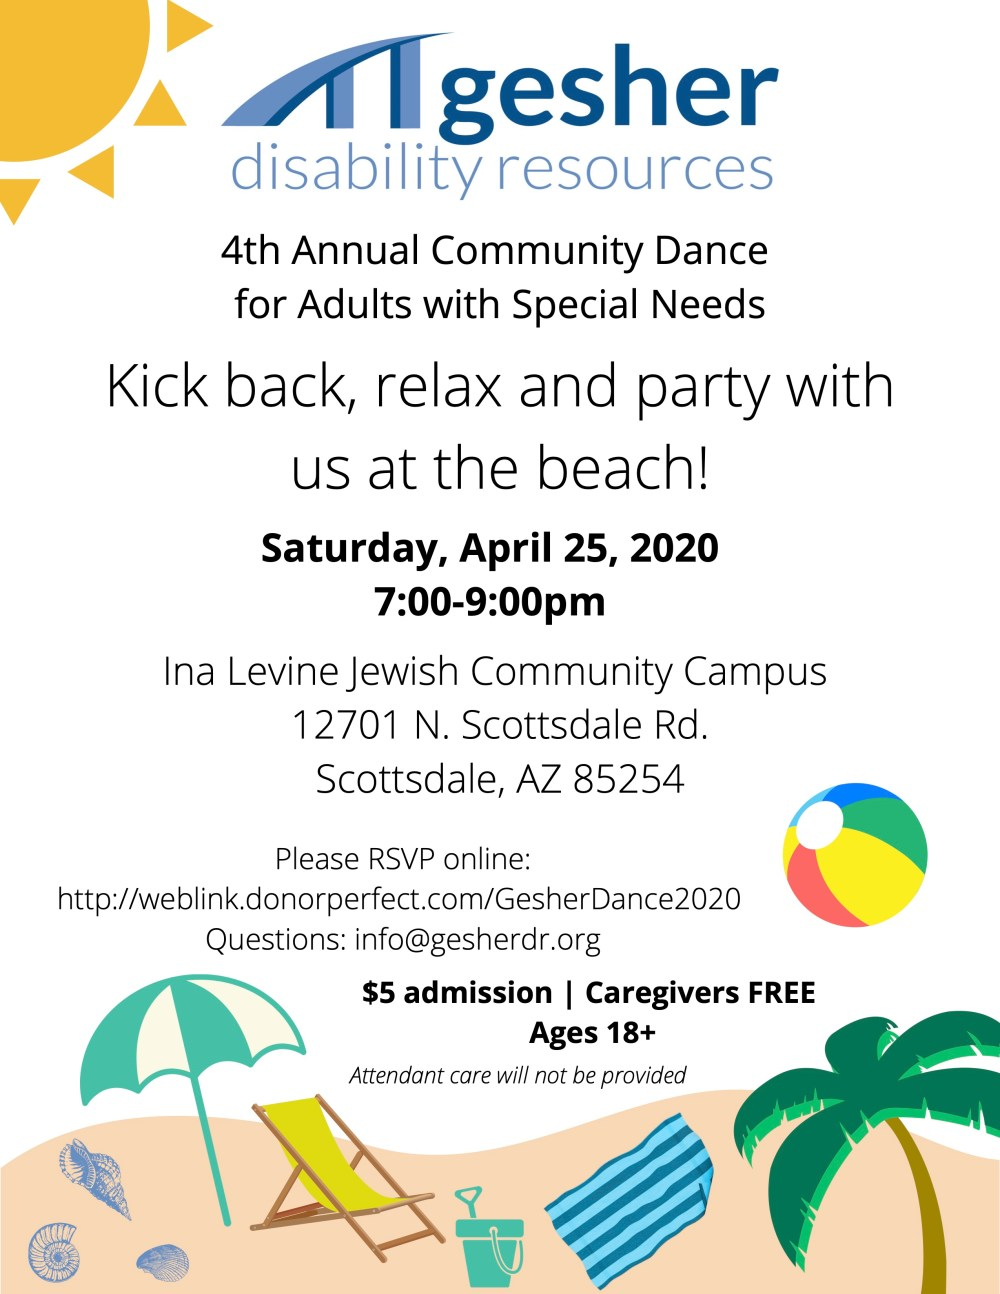 Make the most out of your summer with an awesome party!